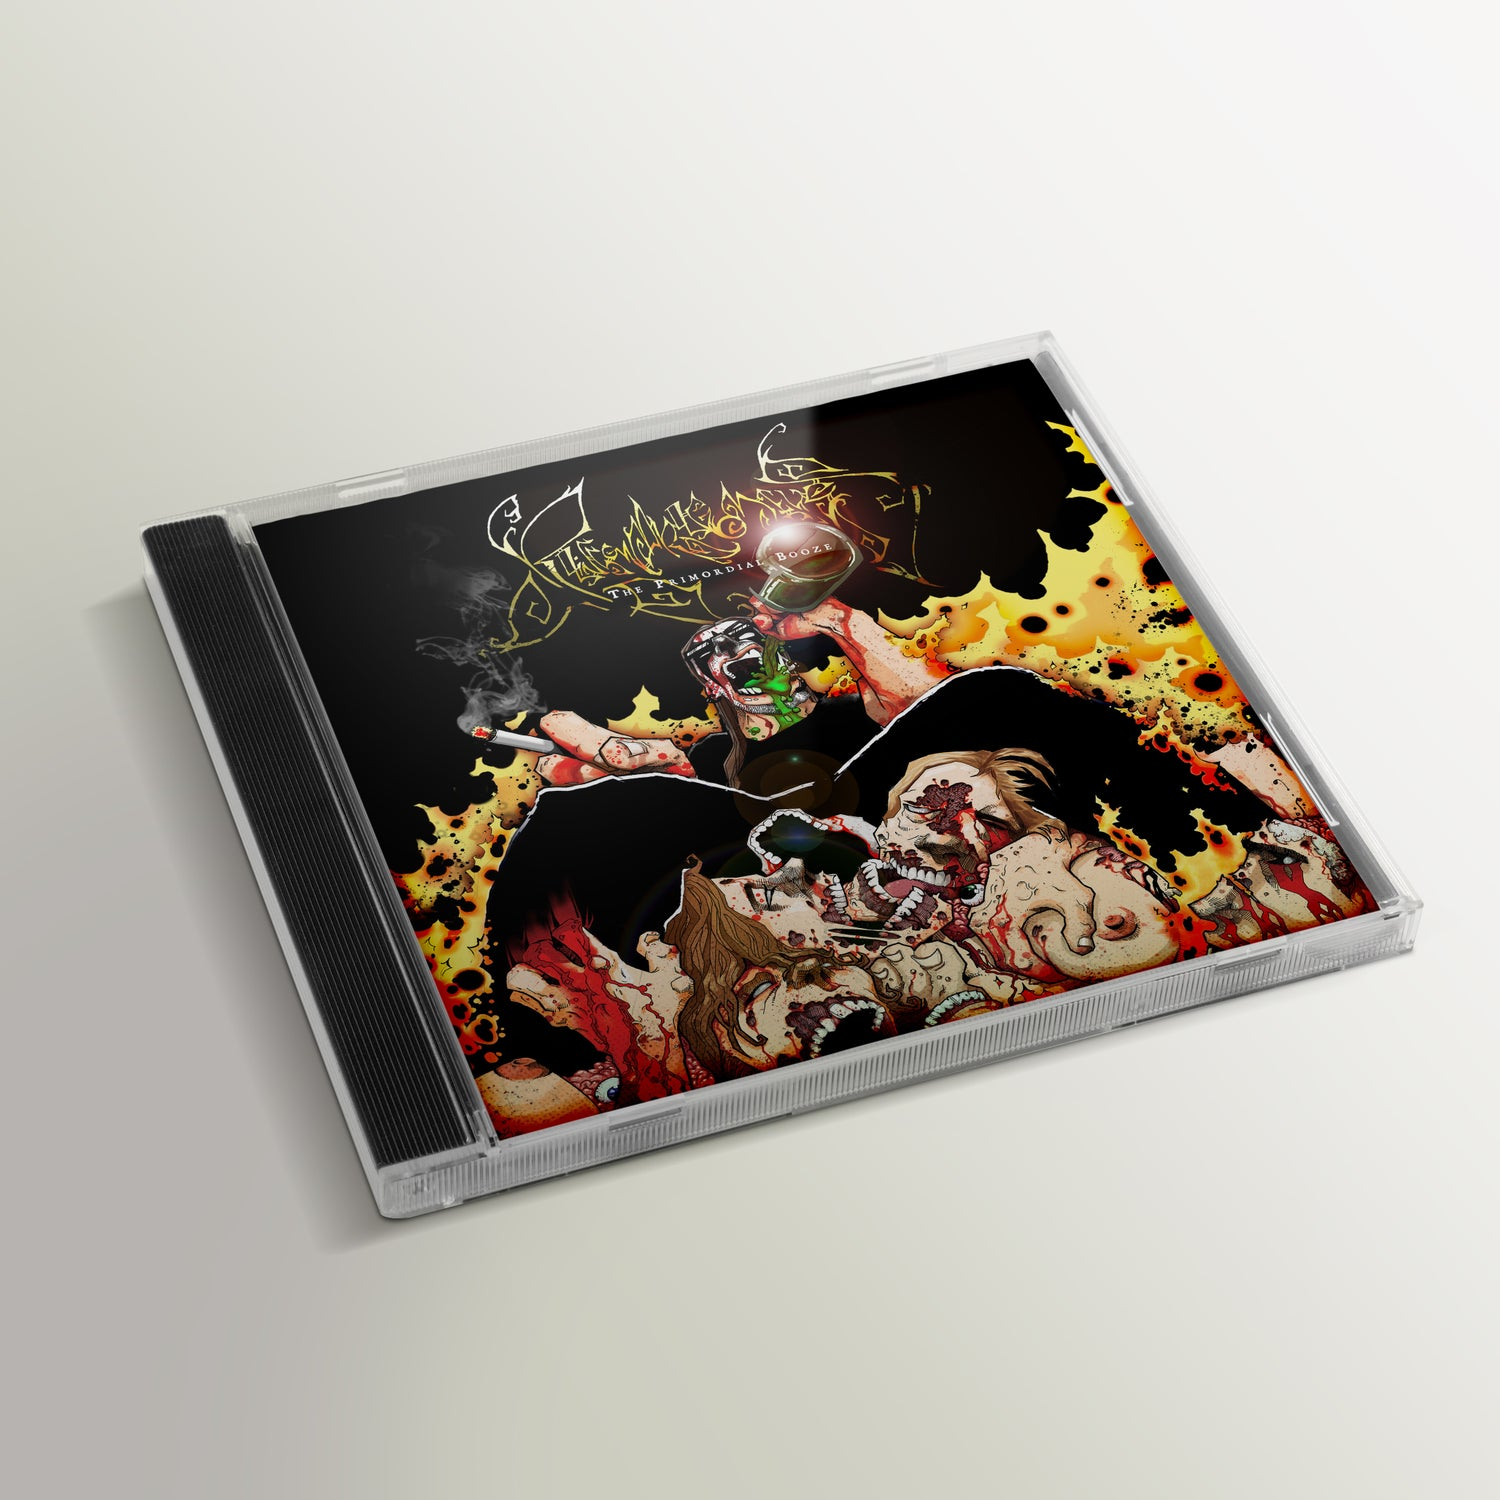 Image of [CD] The Primordial Booze